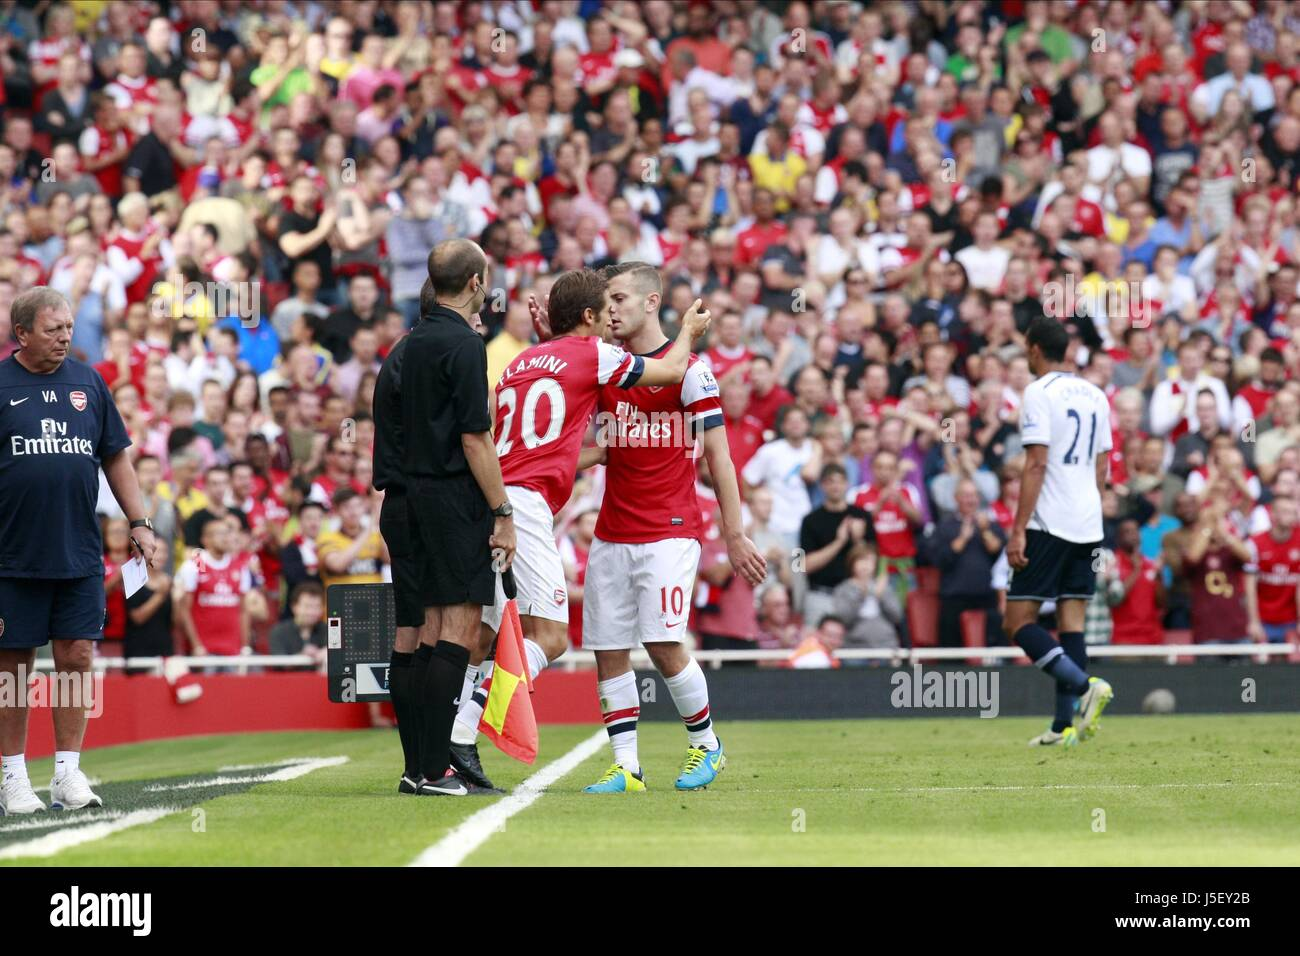 JACK WILSHIRE IS REPLACED BY M ARSENAL V TOTTENHAM HOTSPUR ARSENAL THE EMIRATES LONDON ENGLAND 01 September 2013 - Stock Image